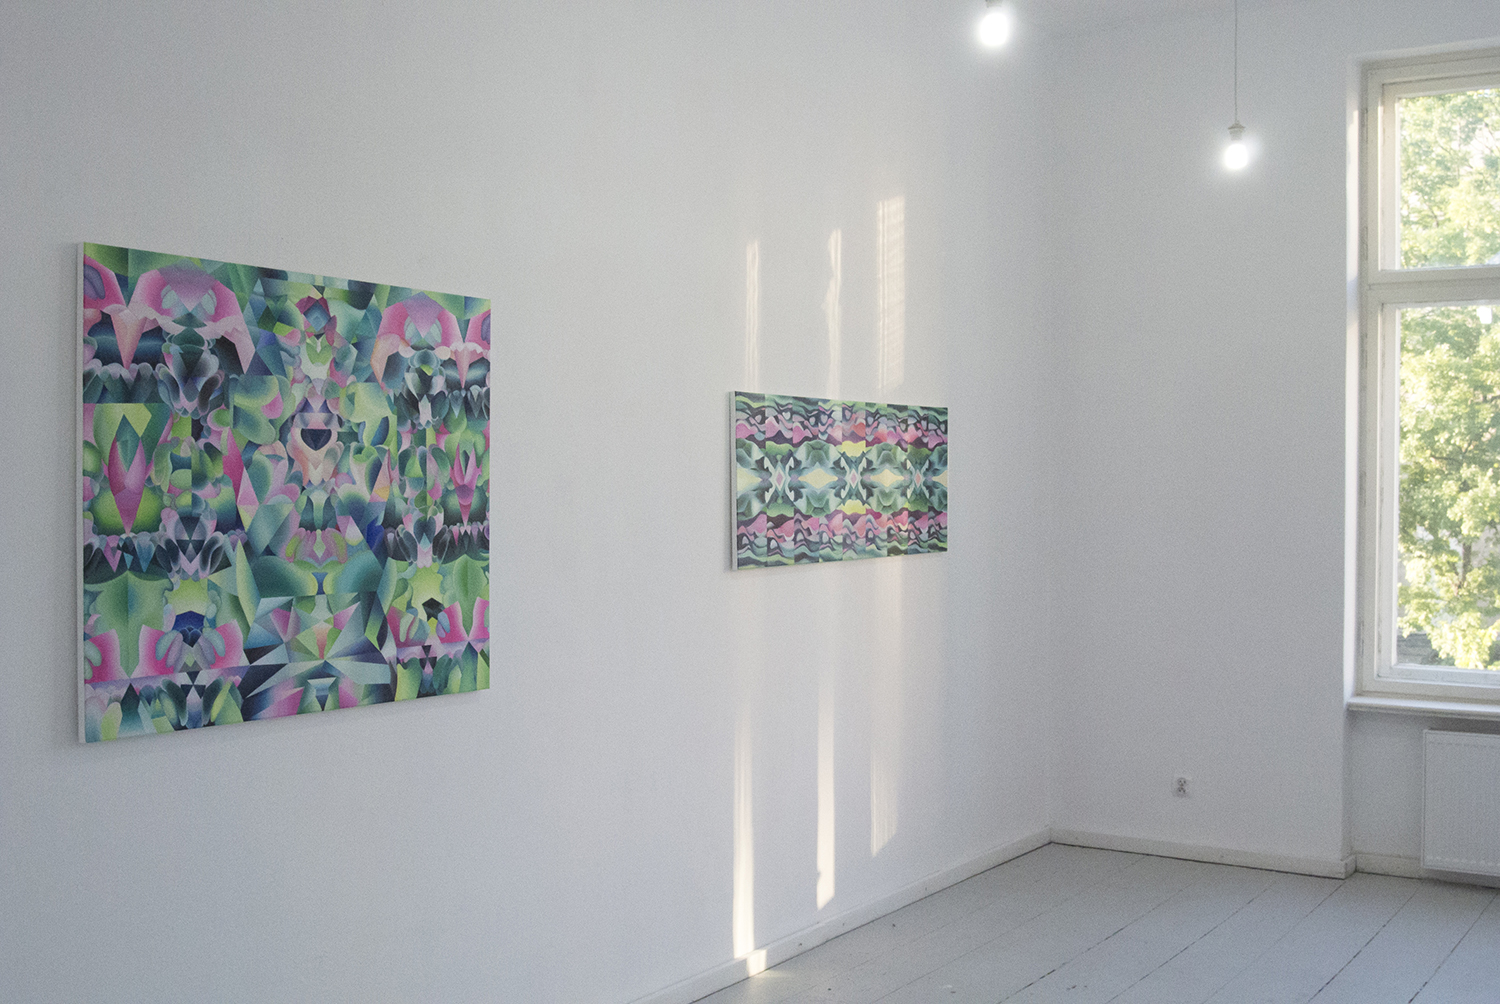 paintings, abstract, aesthetic, geometric, patterns, green, pink, cotton-canvas, oil, abstract-forms, beautiful, contemporary-art, danish, decorative, design, female, feminist, flowers, interior, interior-design, modern, modern-art, nordic, scandinavien, Buy original high quality art. Paintings, drawings, limited edition prints & posters by talented artists.